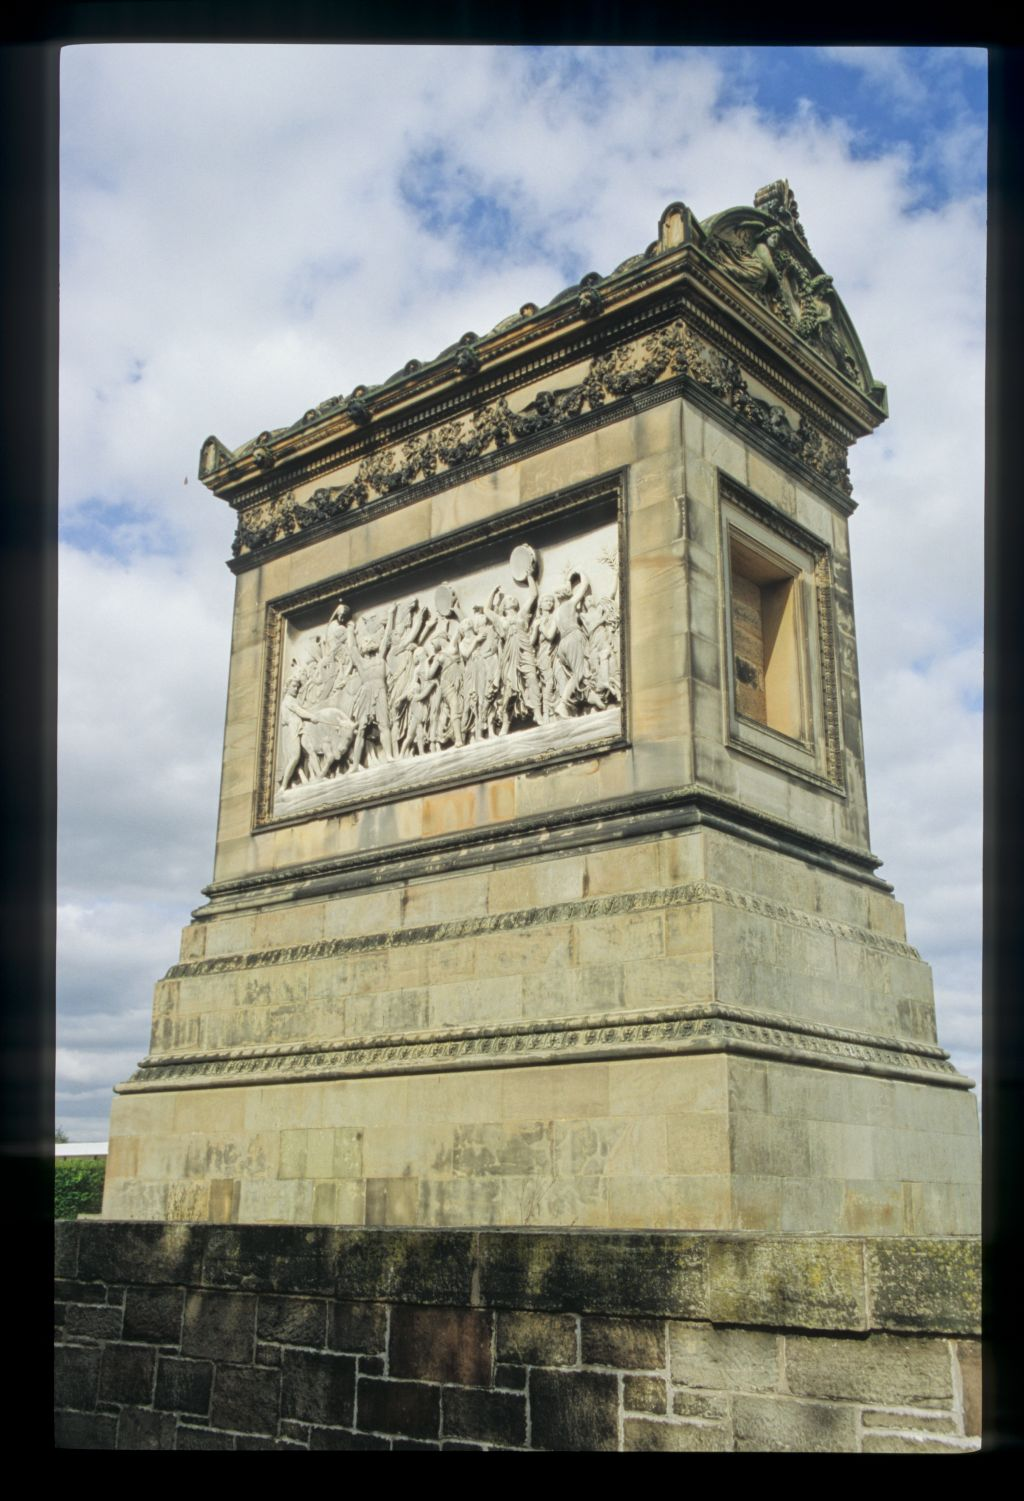 Craigentinny Marbles, Edinburgh. The colossal burial mausoleum of William H Miller (also known as Measure Miller)